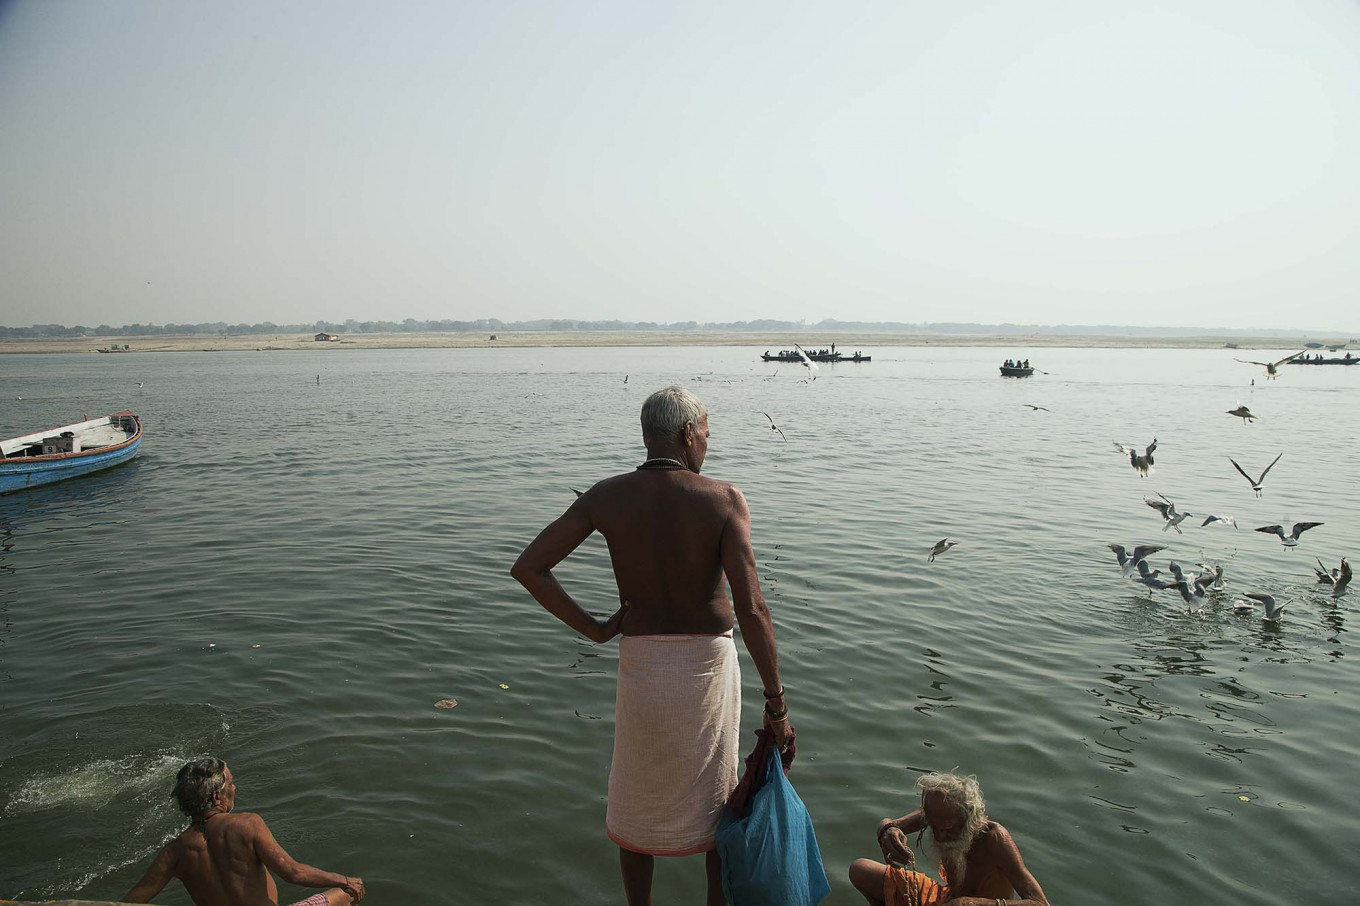 There are more than 80 ghats, the multiputpose, stone riverbank steps that give access to the Ganges in Varanasi. JP/Irene Barlian